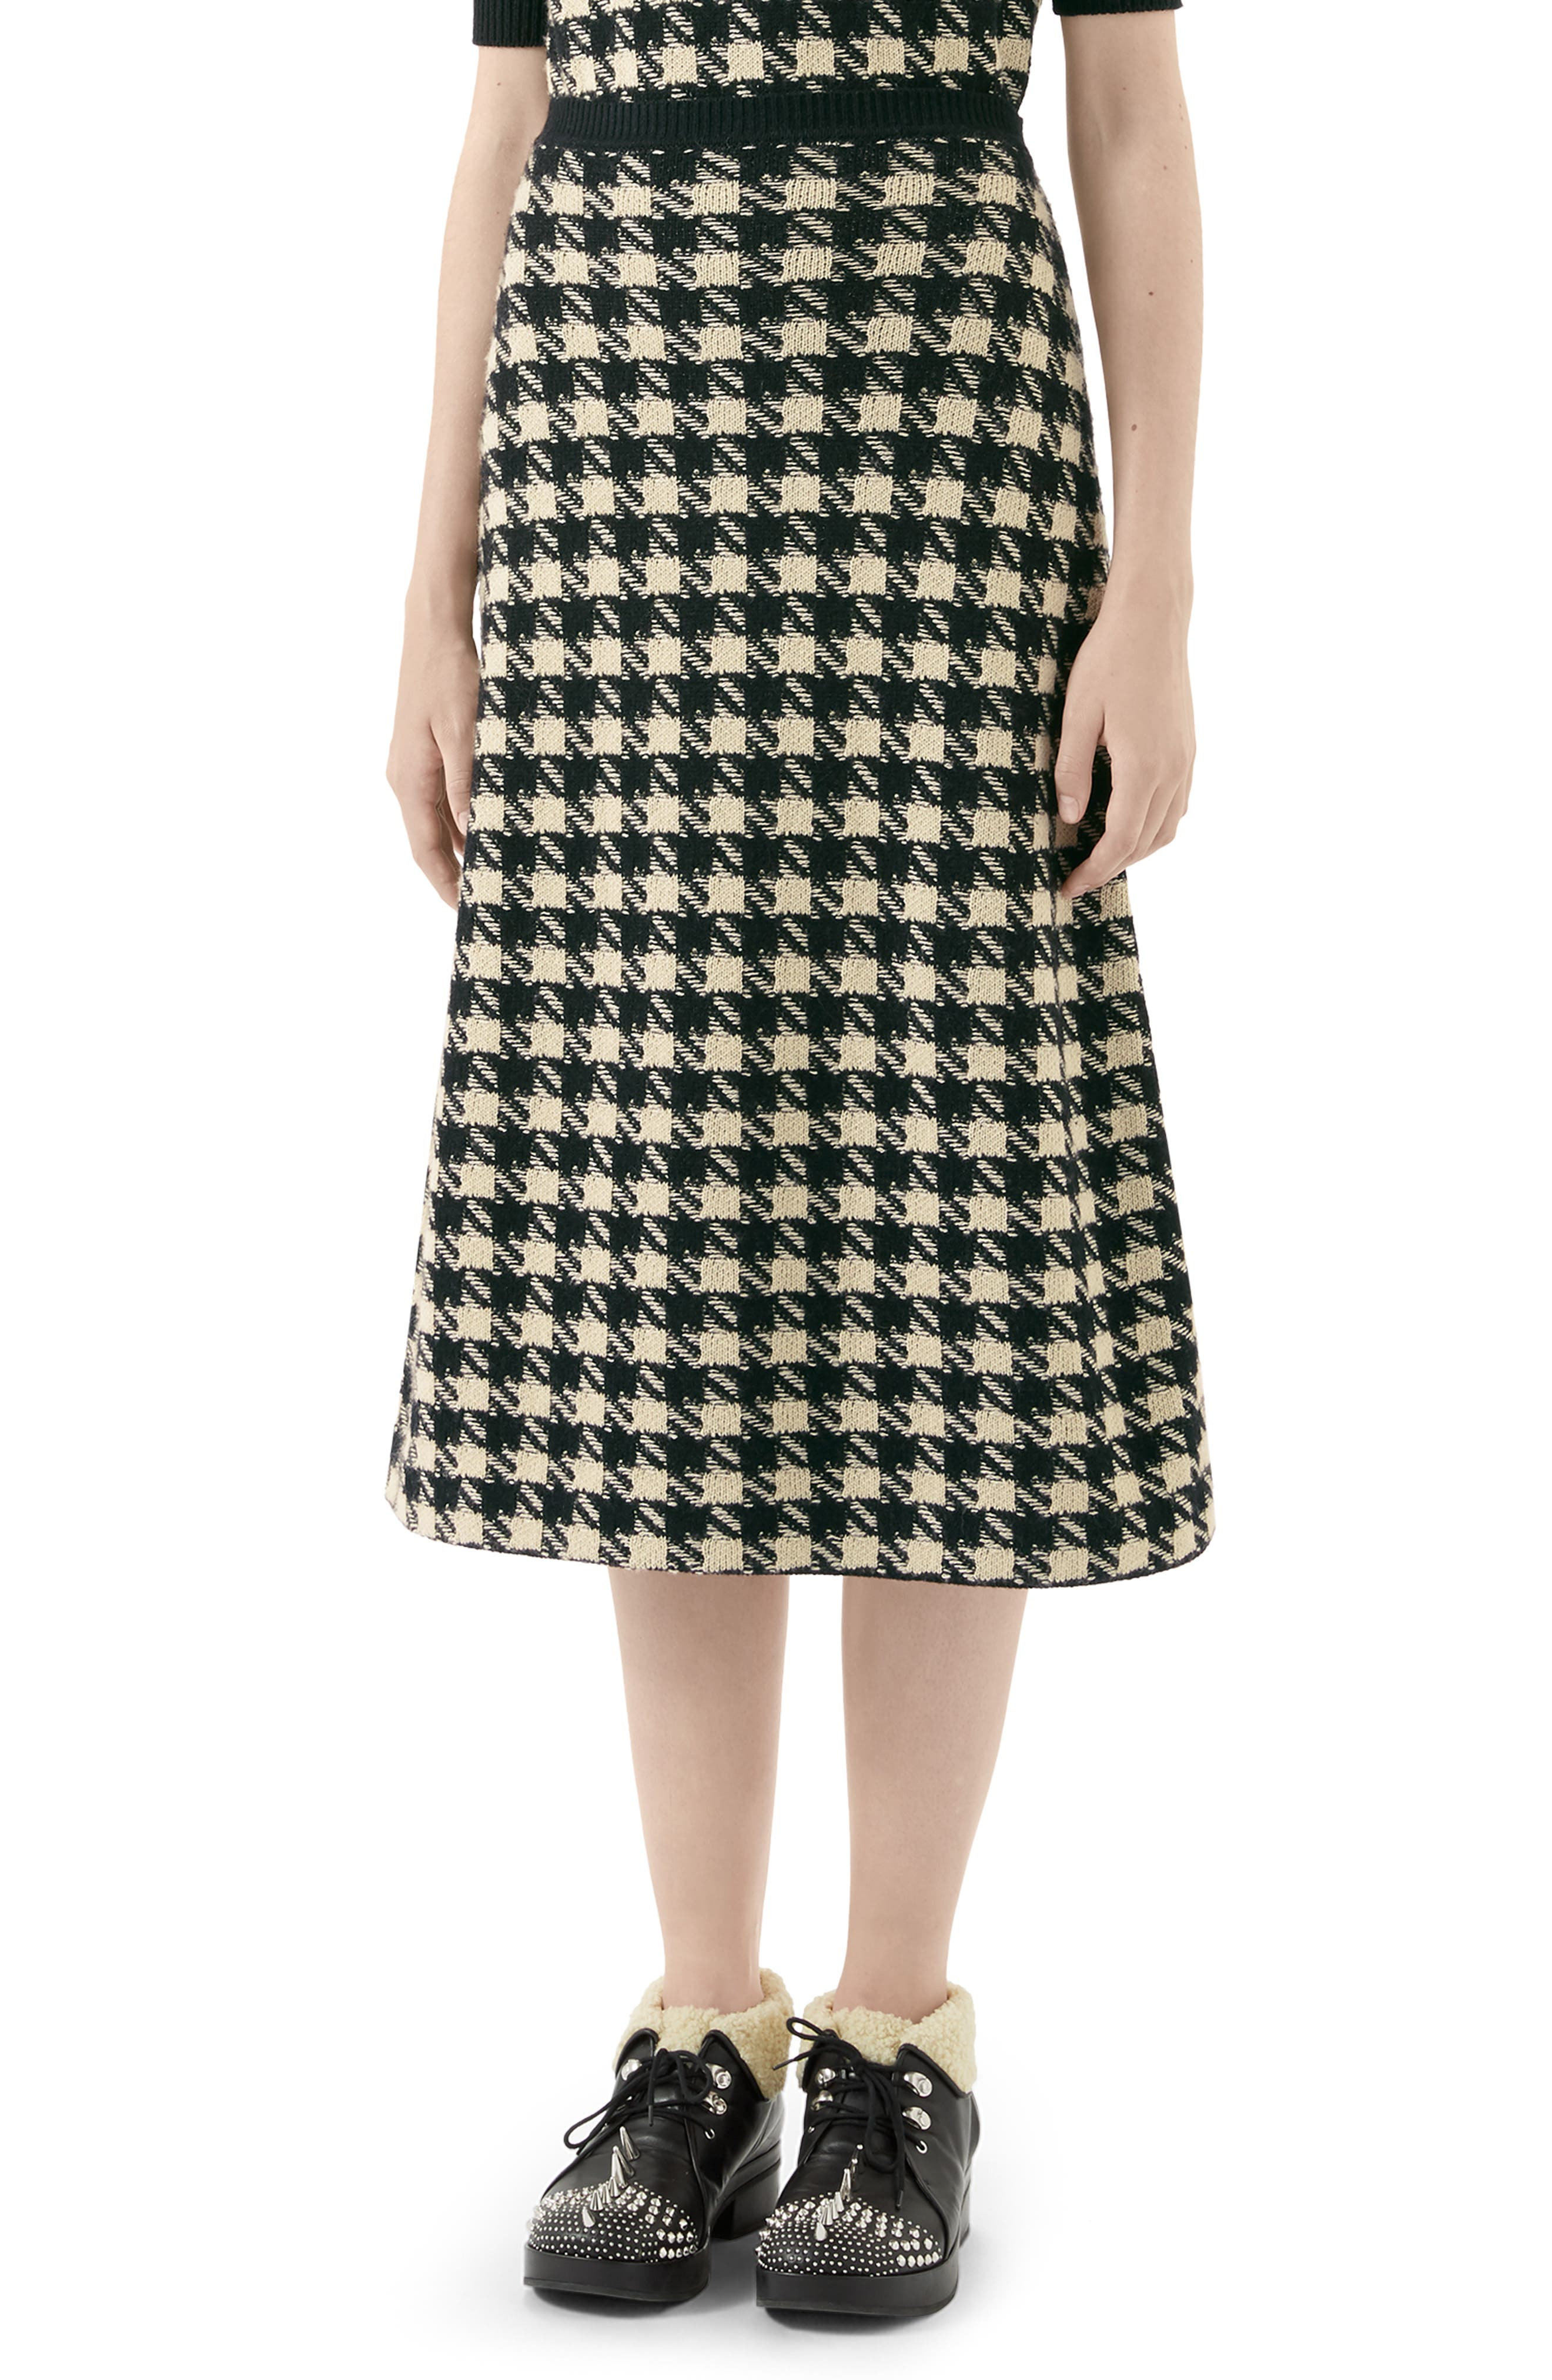 Gucci Knits Houndstooth Jacquard Cashmere & Silk Midi Sweater Skirt